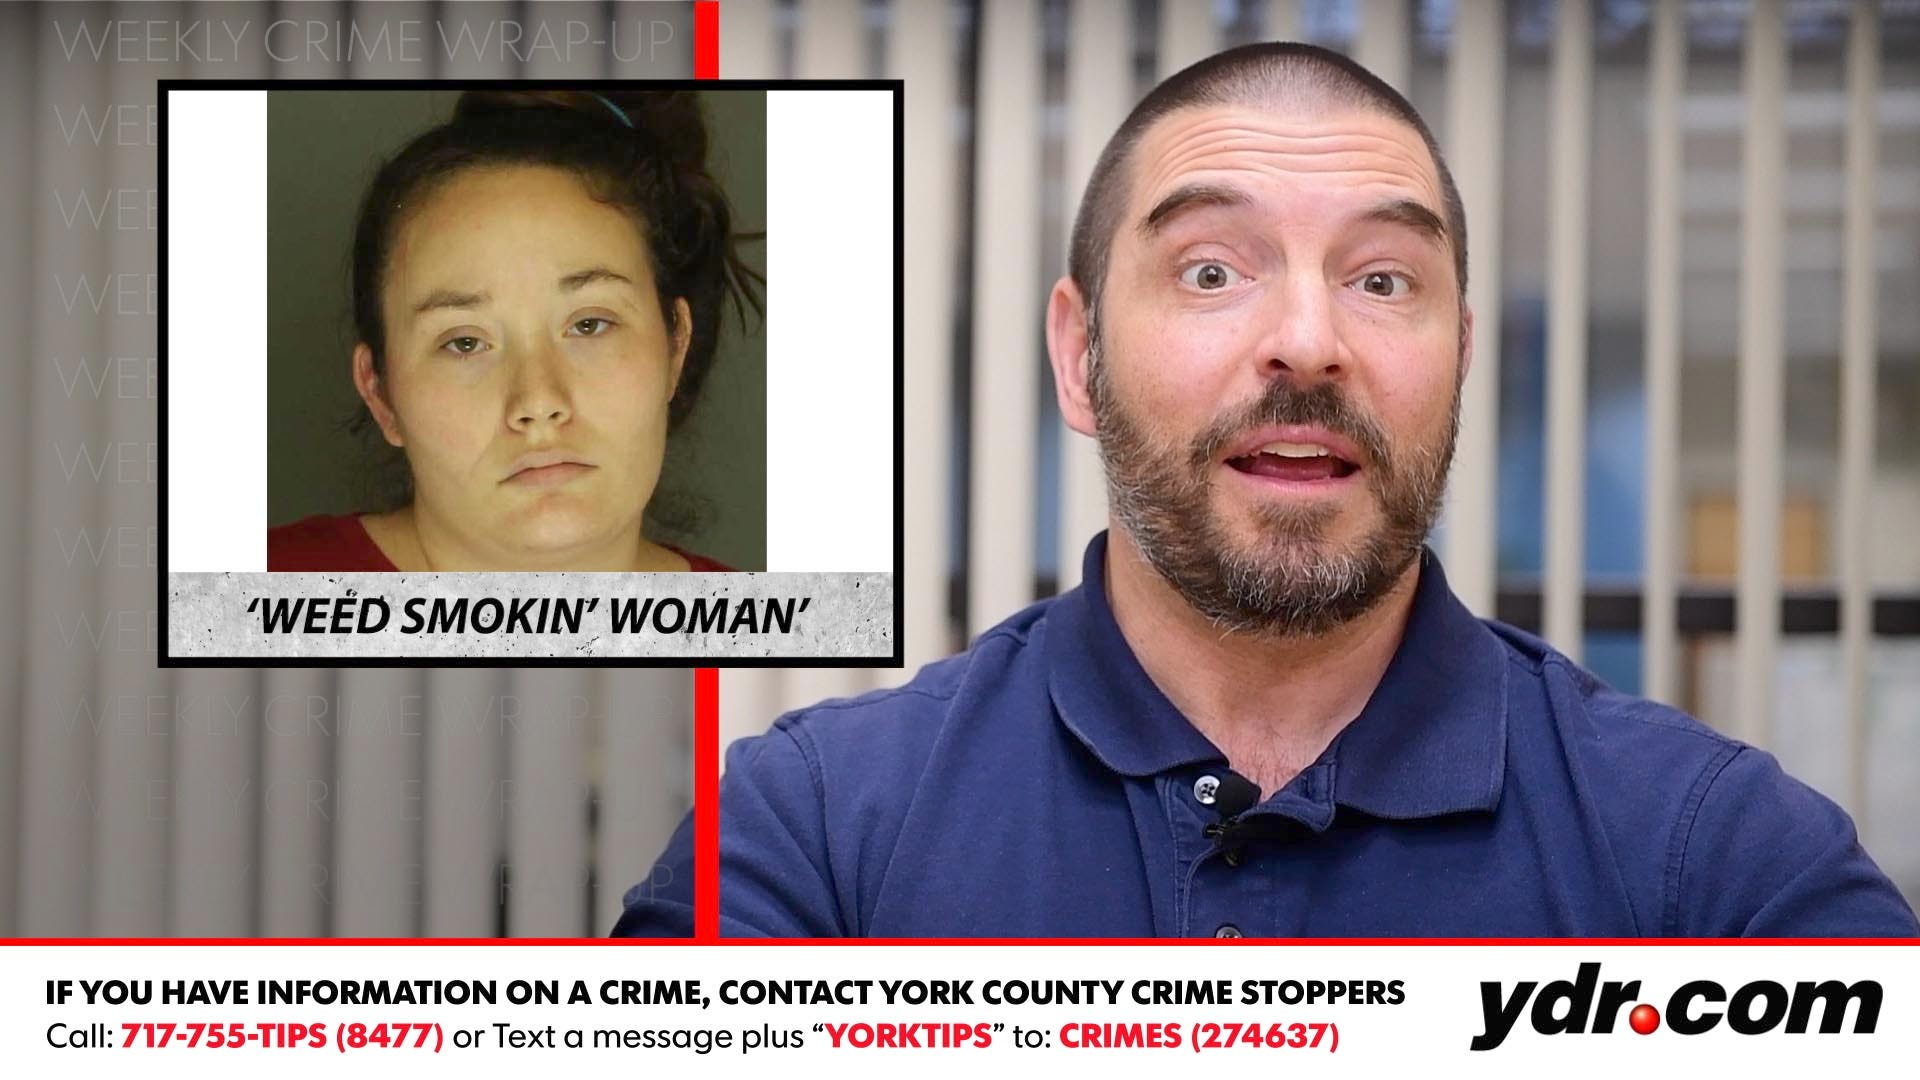 Watch: Weed smokin' woman and other crime stories